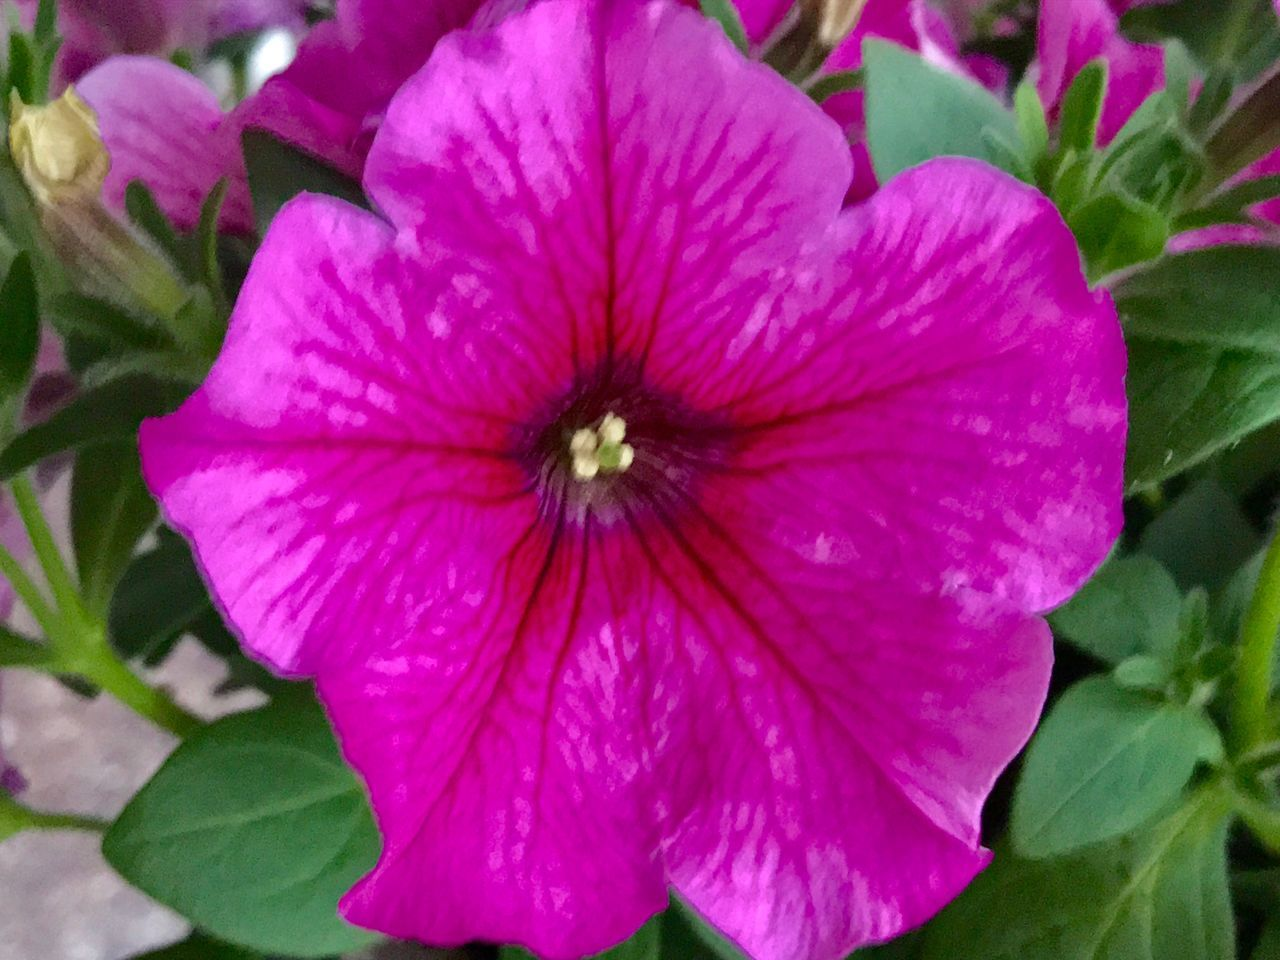 flower, petal, fragility, growth, flower head, plant, beauty in nature, freshness, nature, blooming, pink color, day, leaf, no people, outdoors, petunia, close-up